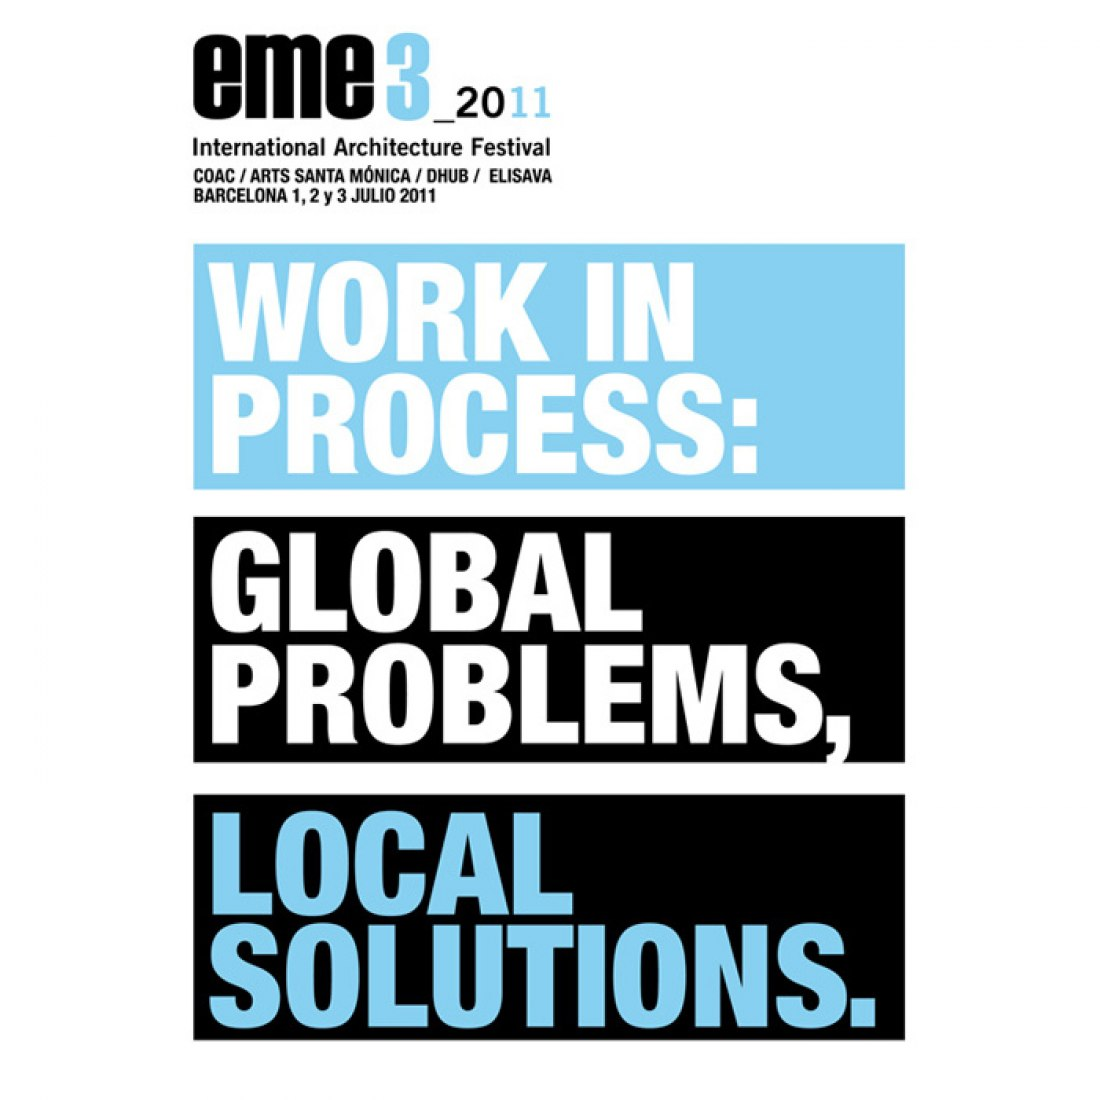 Eme3. WORK IN PROCESS: GLOBAL PROBLEMS LOCAL SOLUTIONS